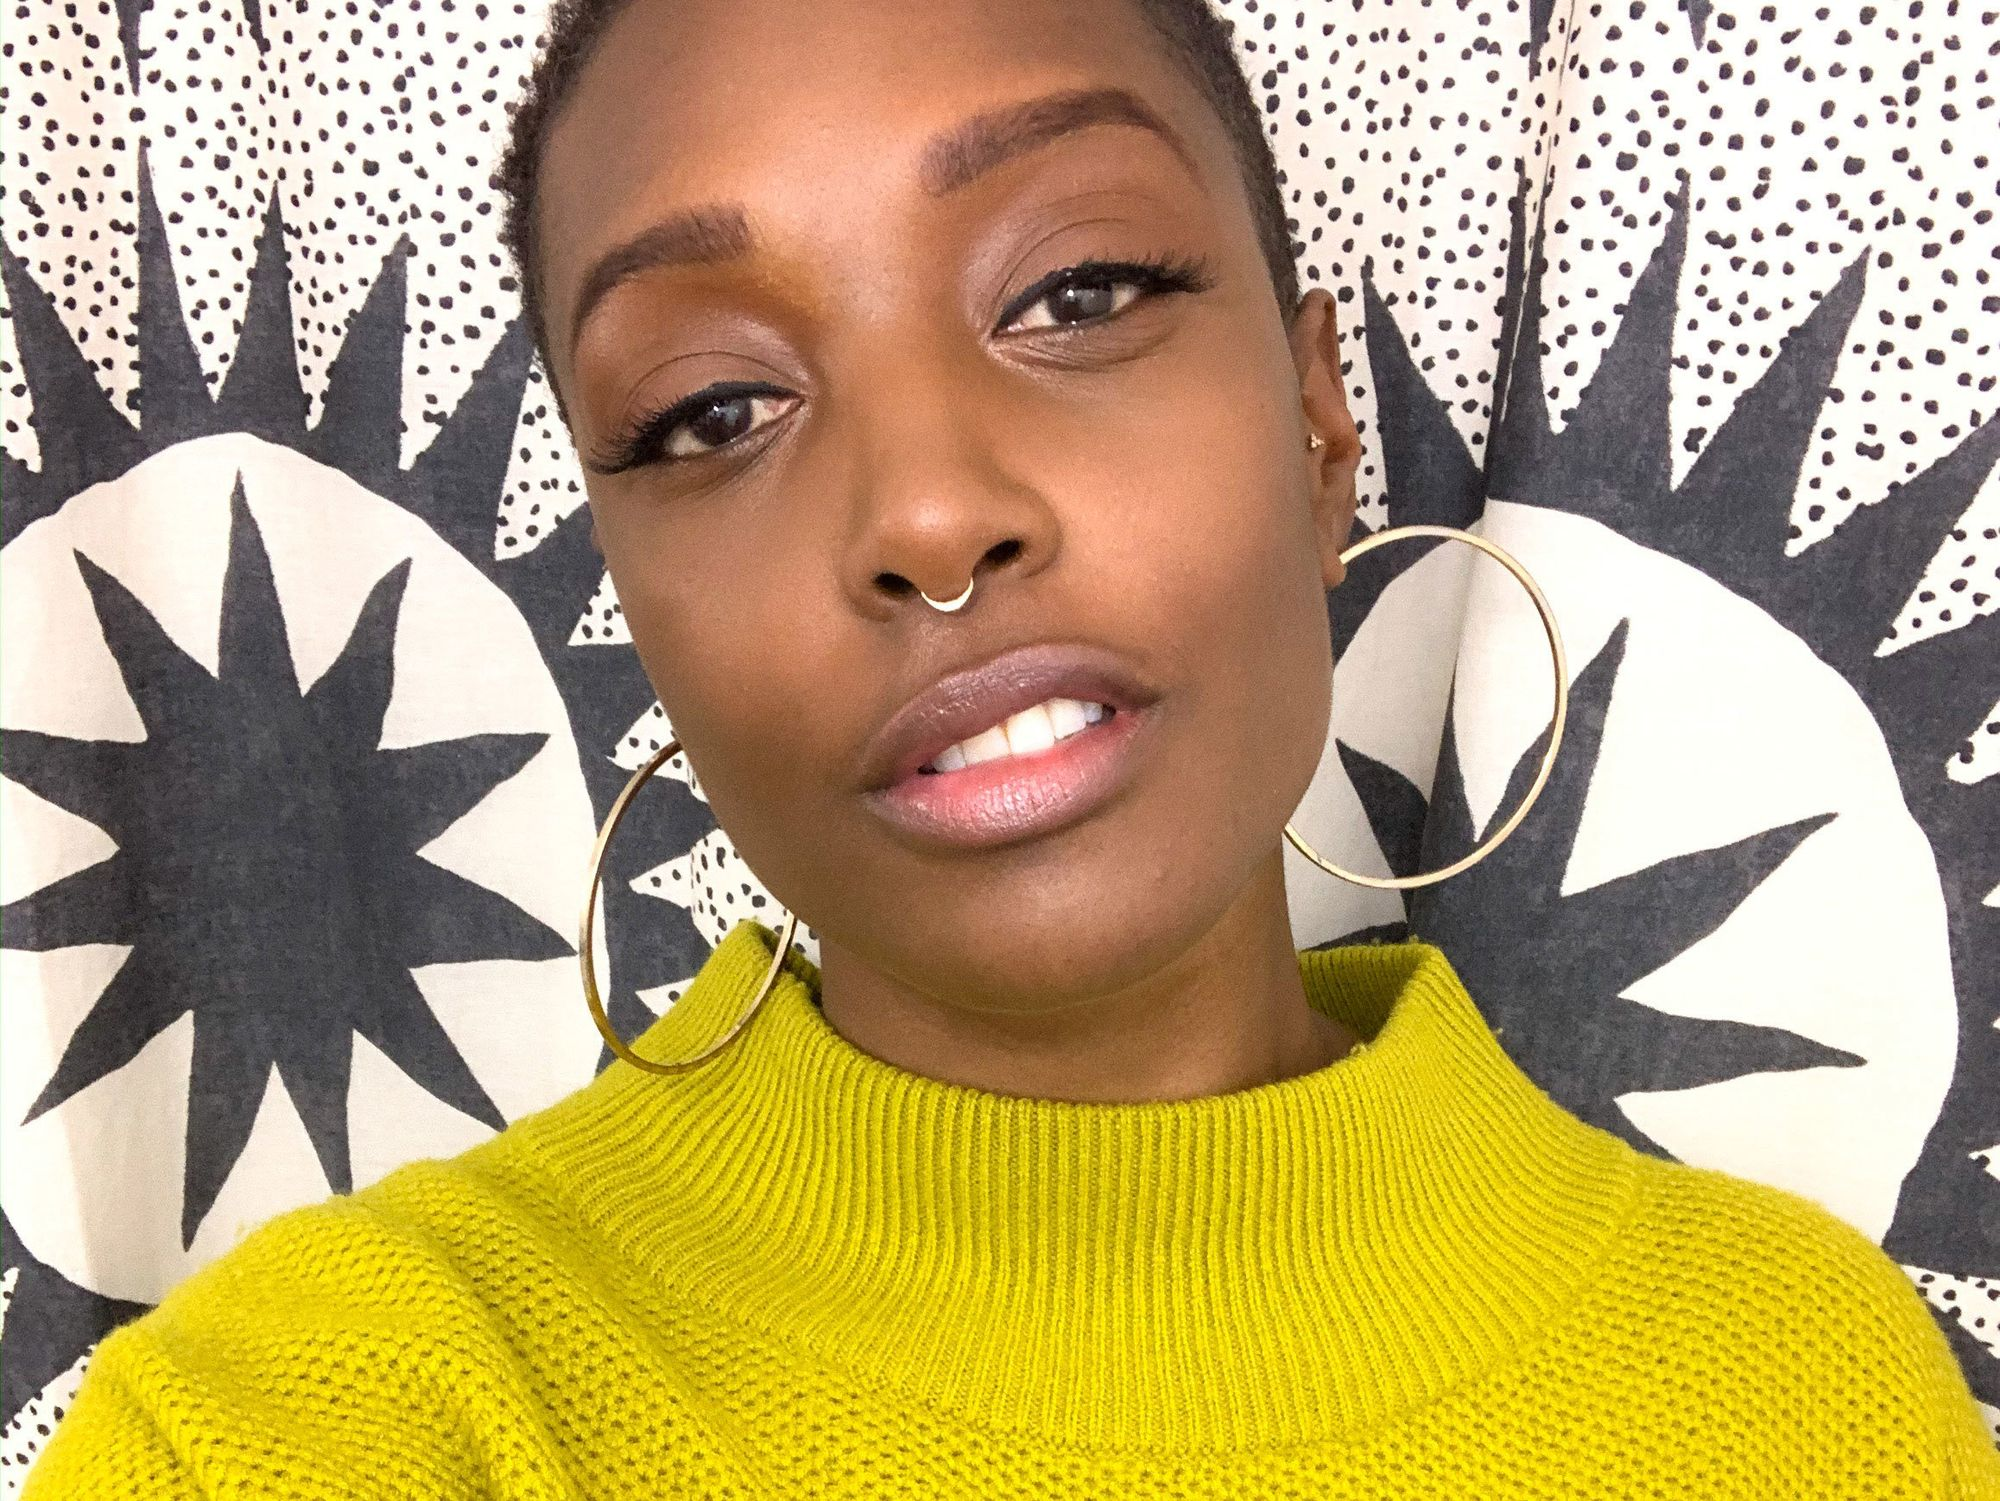 Comedian Franchesca Ramsey on Her Journey to Becoming an Accidental Activist